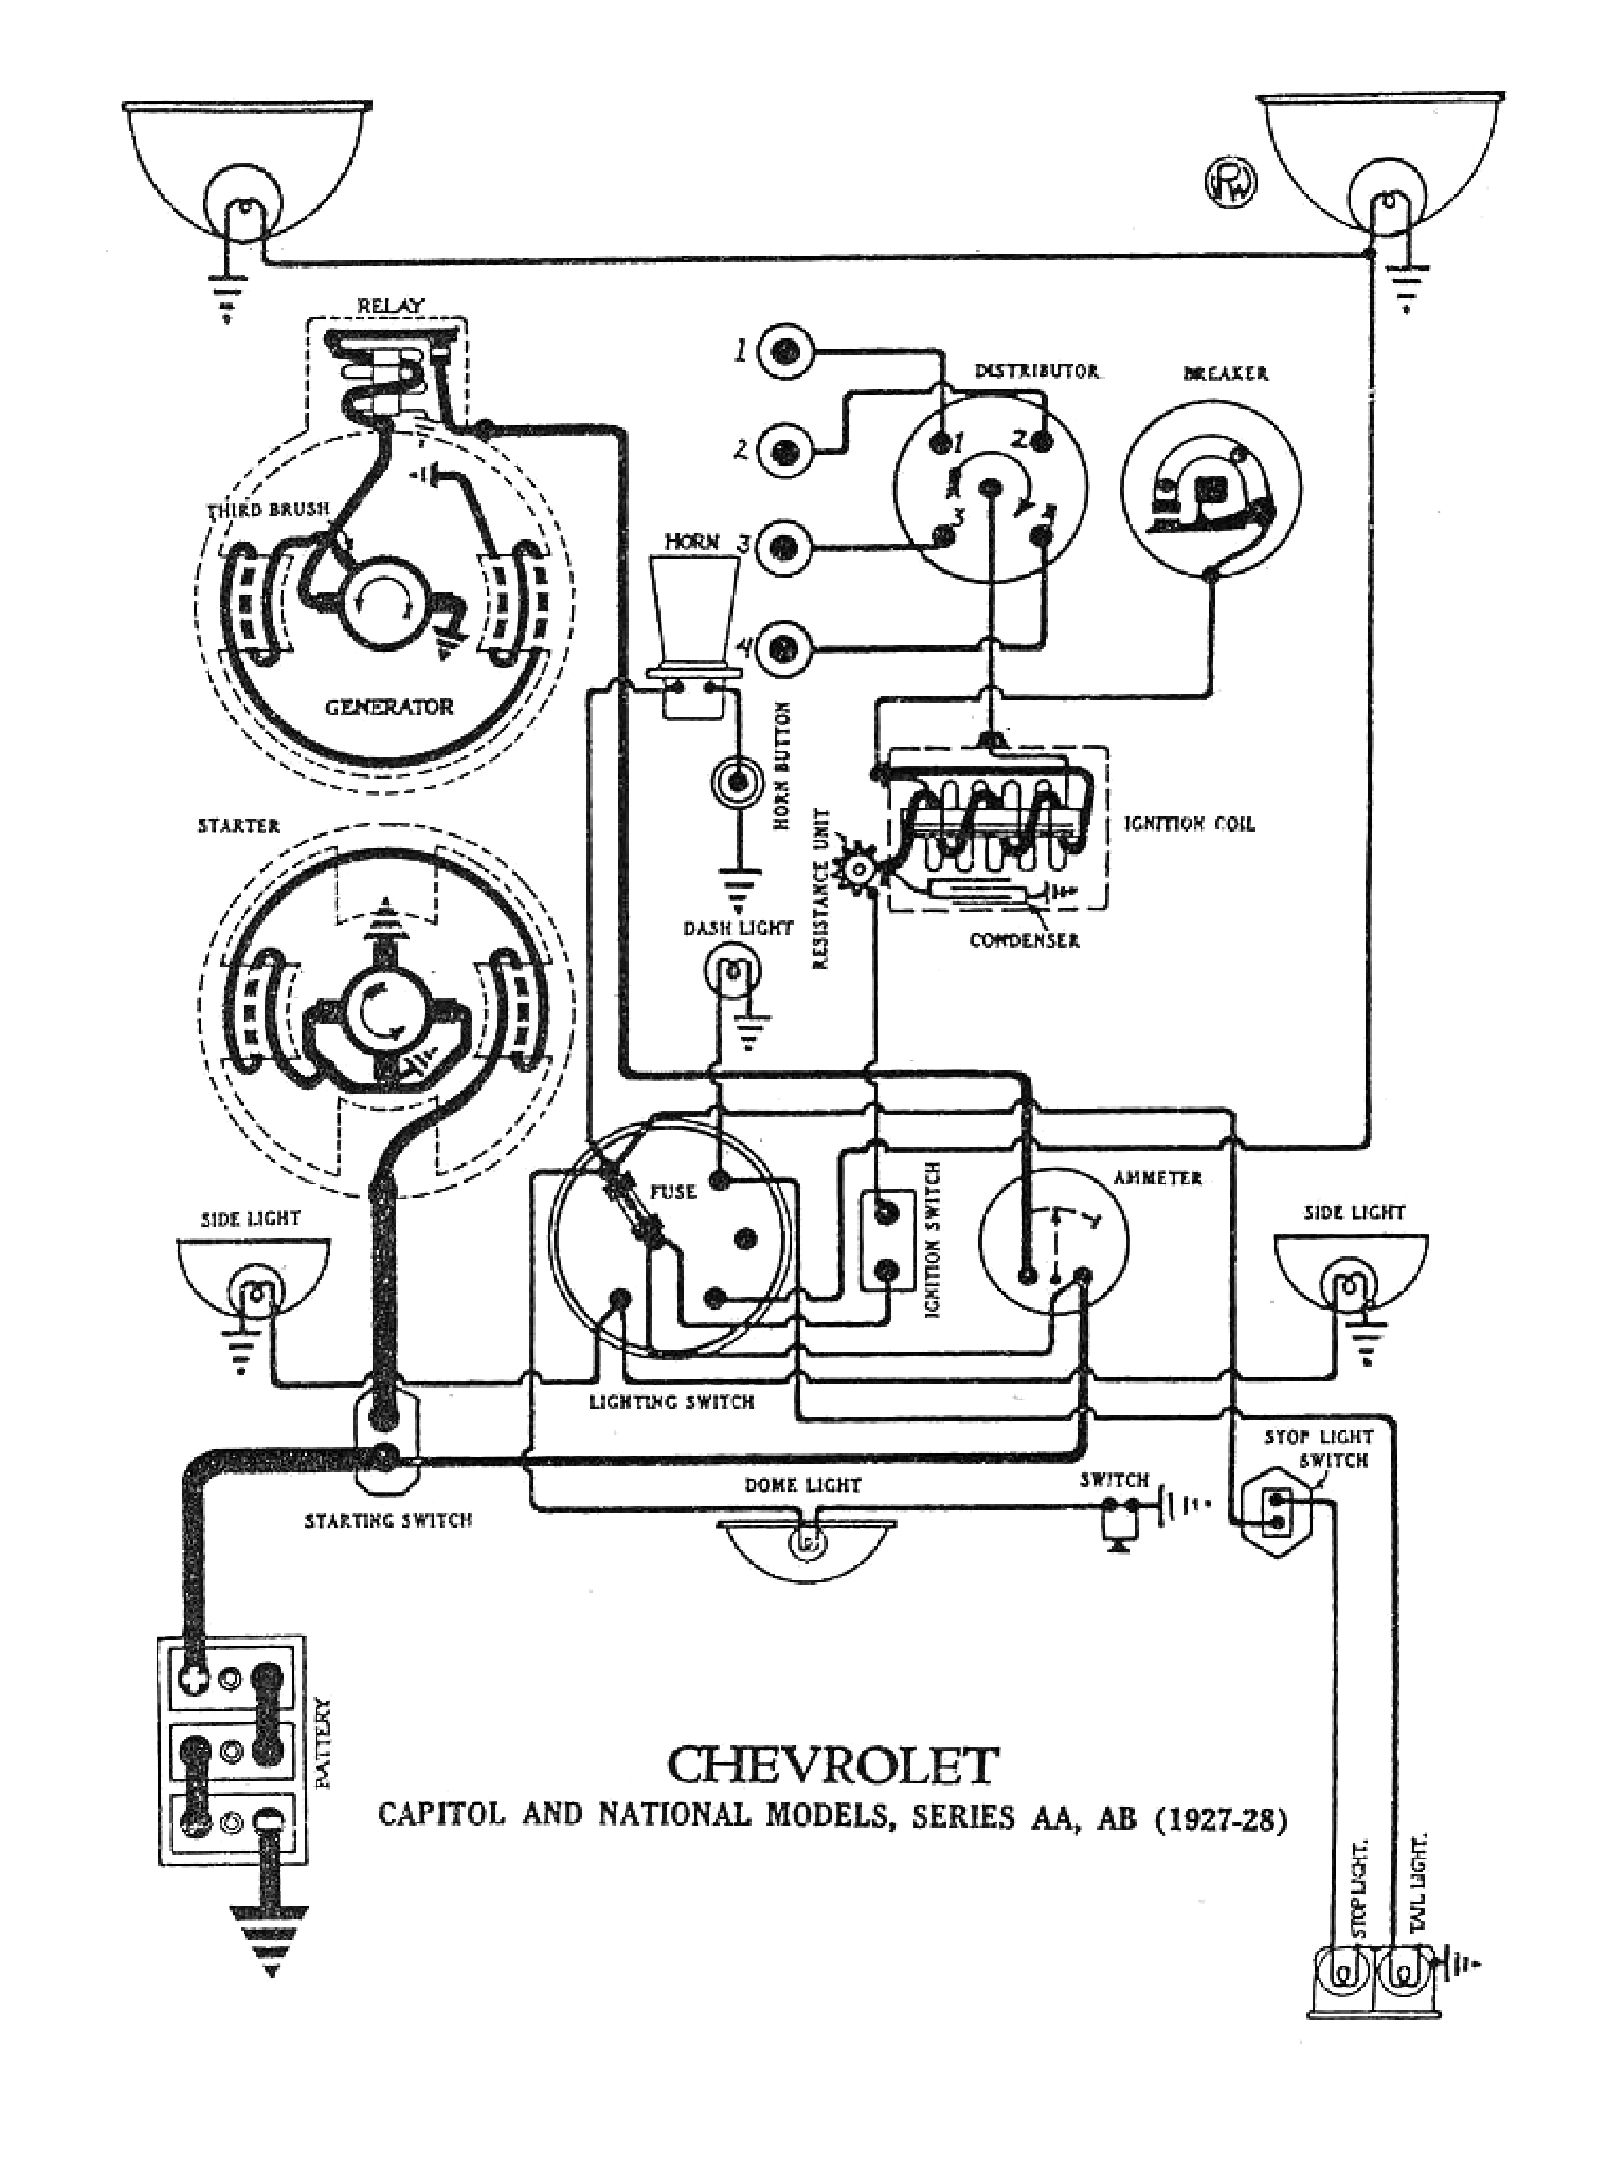 2728wiring chevy wiring diagrams 7mgte wiring diagram at alyssarenee.co